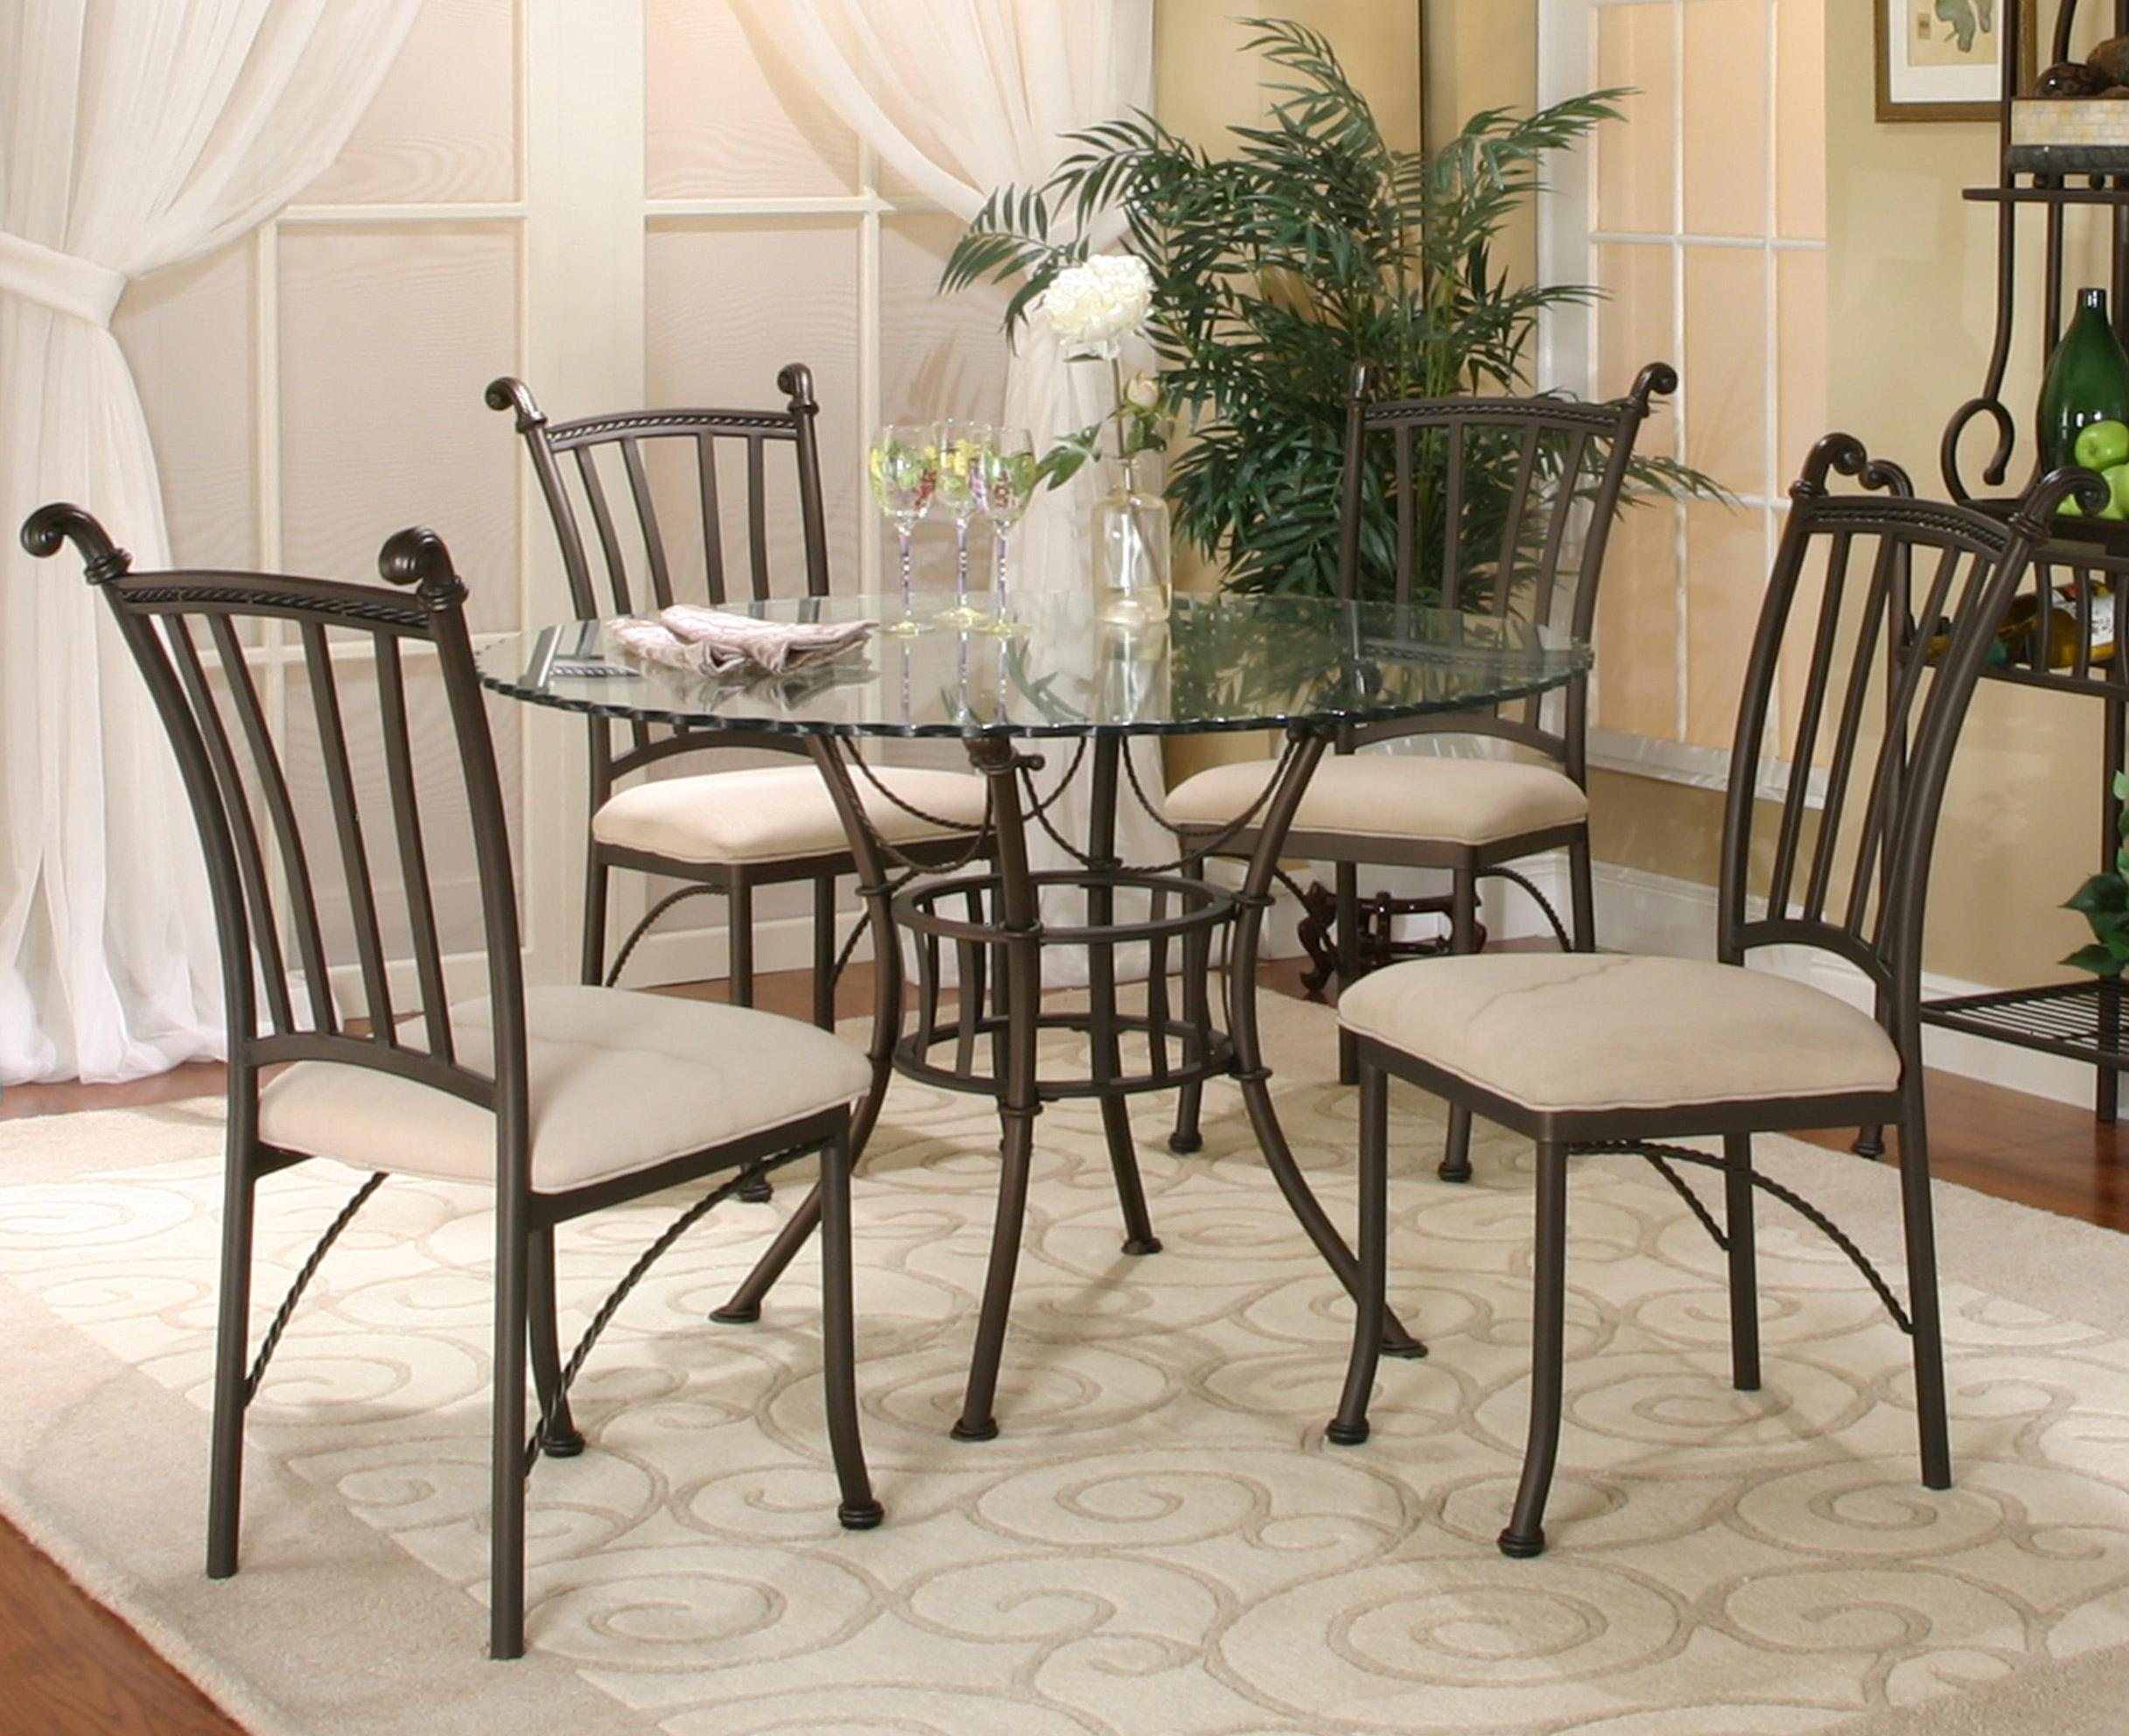 Cramco, Inc Denali 5 Piece Round Glass Table with Chairs - Item Number: 72095-41+47+4x01